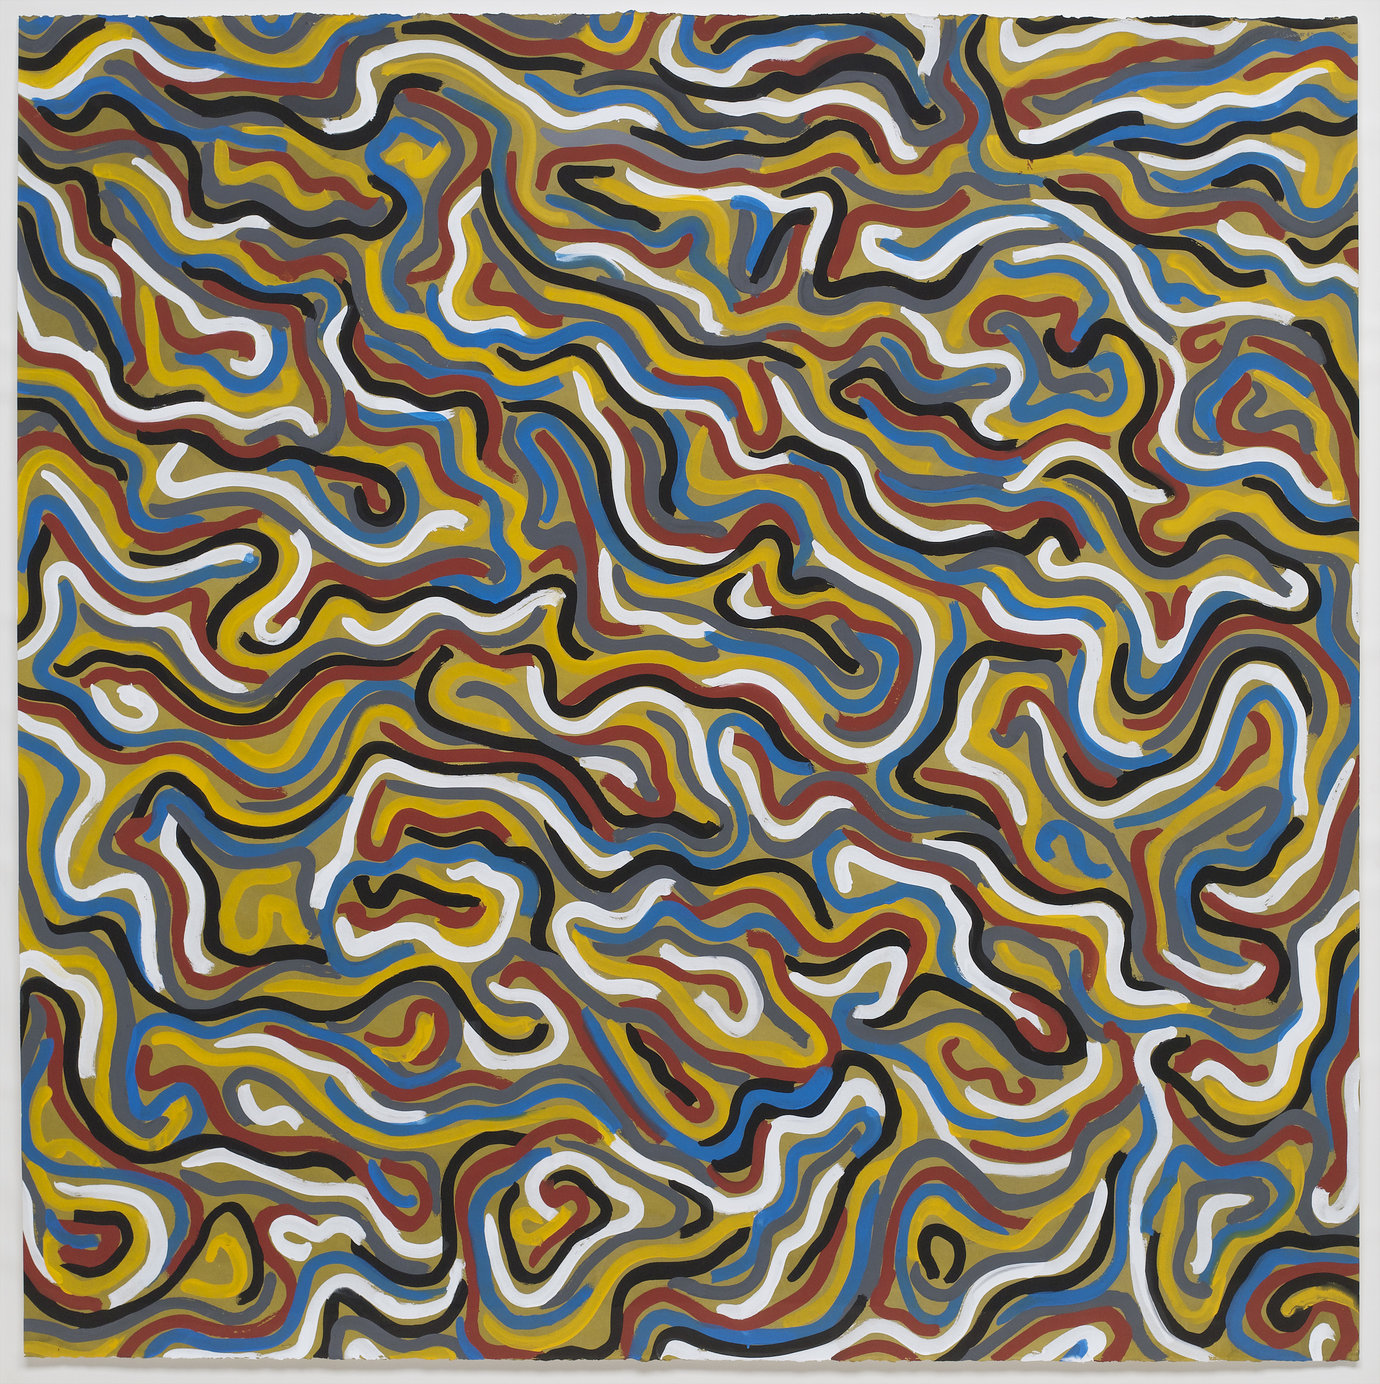 ", 1997. Gouache on paper, 60-5/8"" x 60-3/8"" (154 cm x 153.4 cm)."